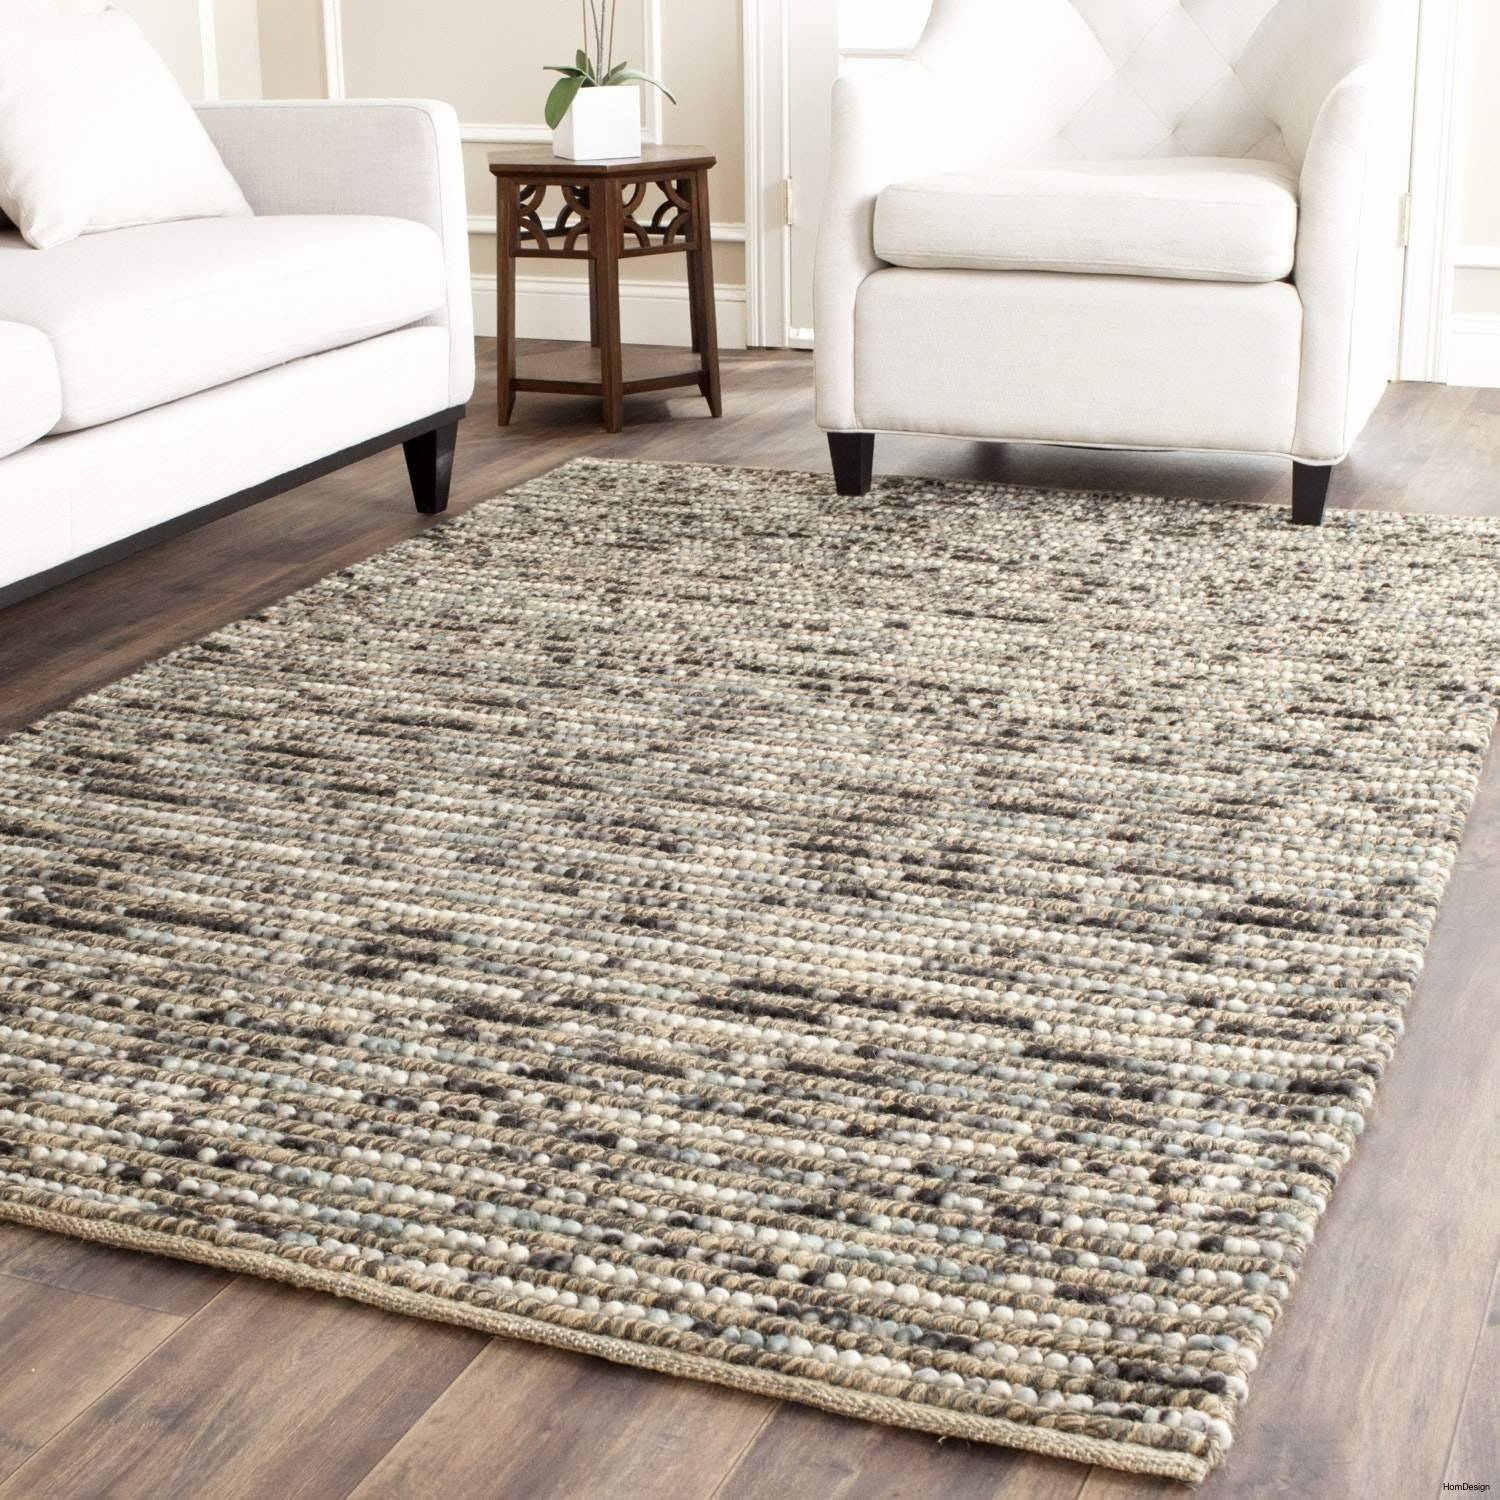 how to hardwood floor of carpets for living rooms unique area rugs for hardwood floors best inside carpets for living rooms beautiful grey and cream area rug awesome rugged new cheap area ru